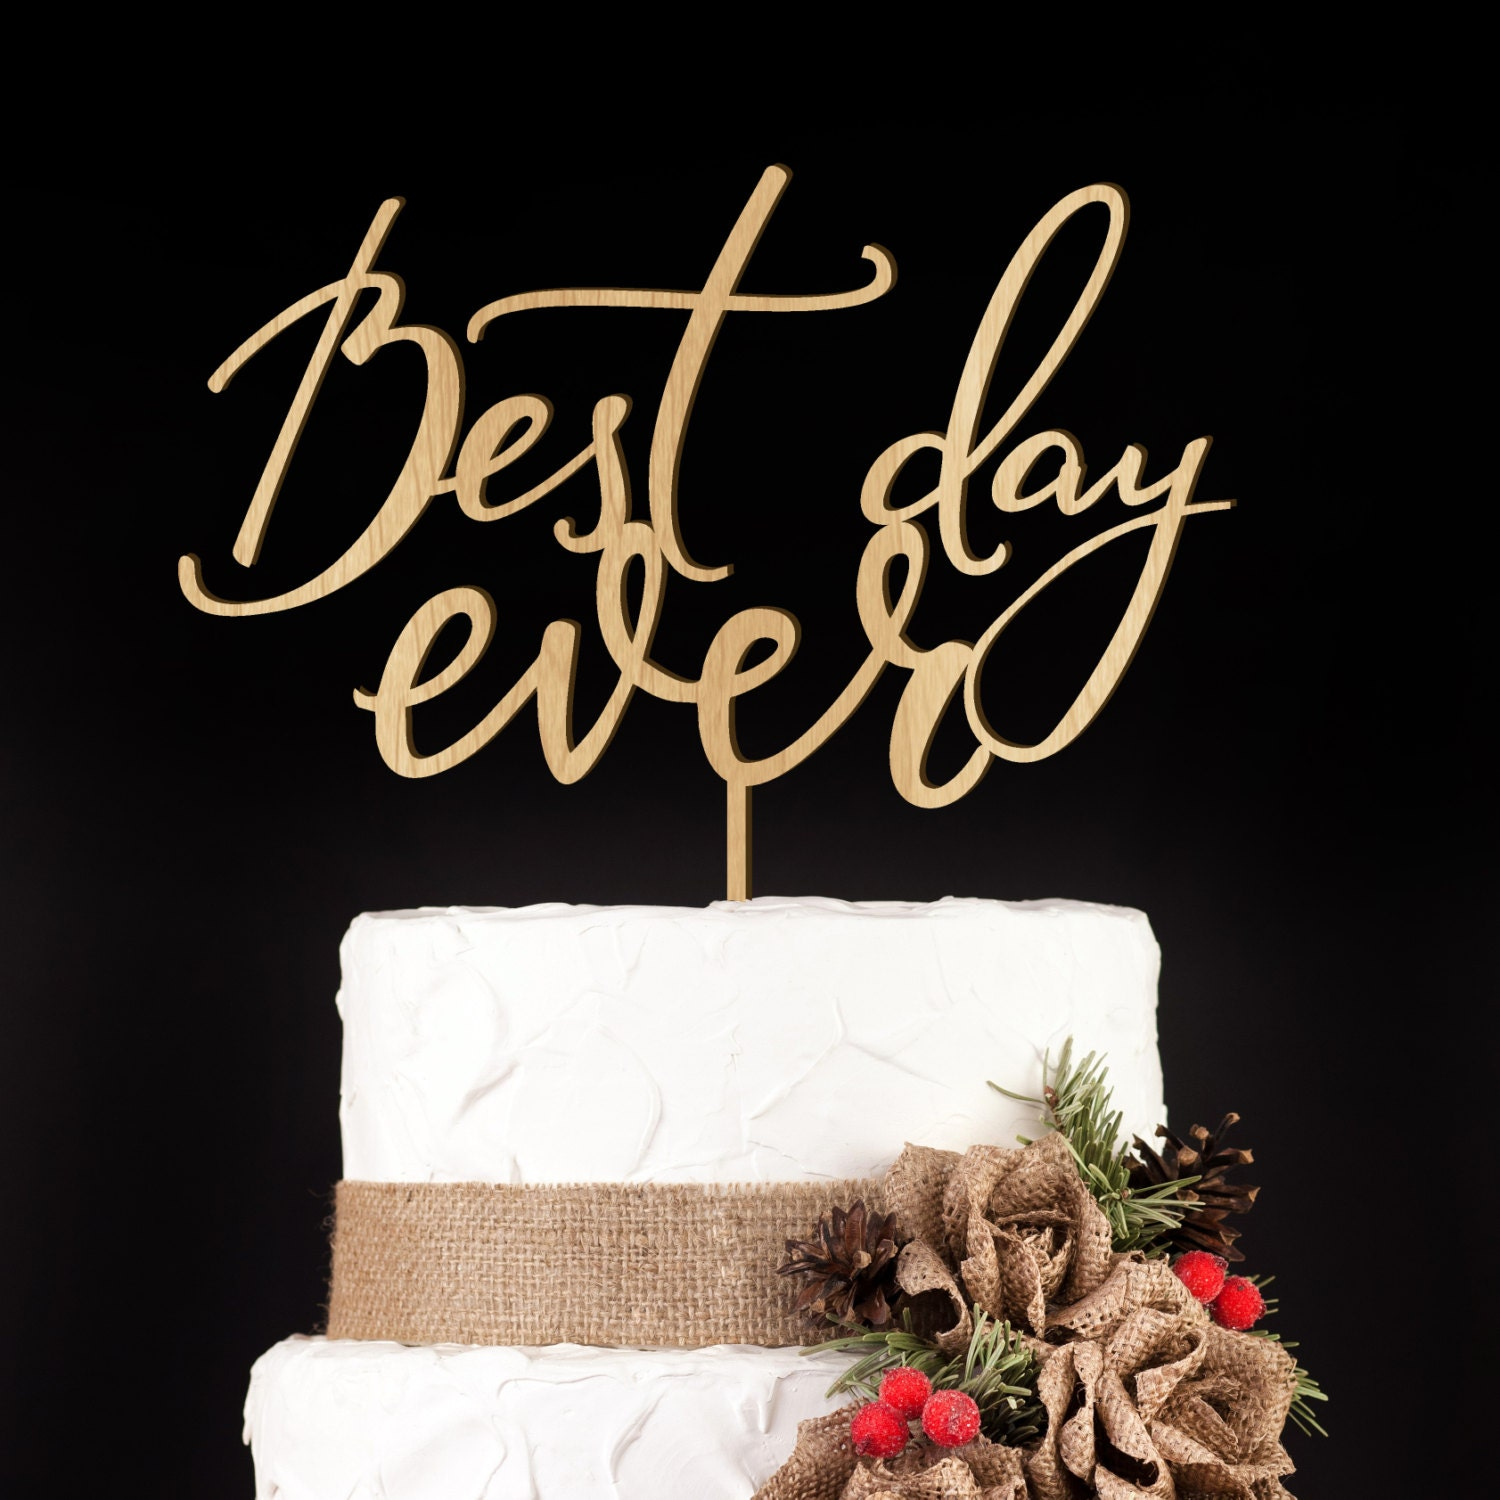 Best Day Ever Cake Topper Australia